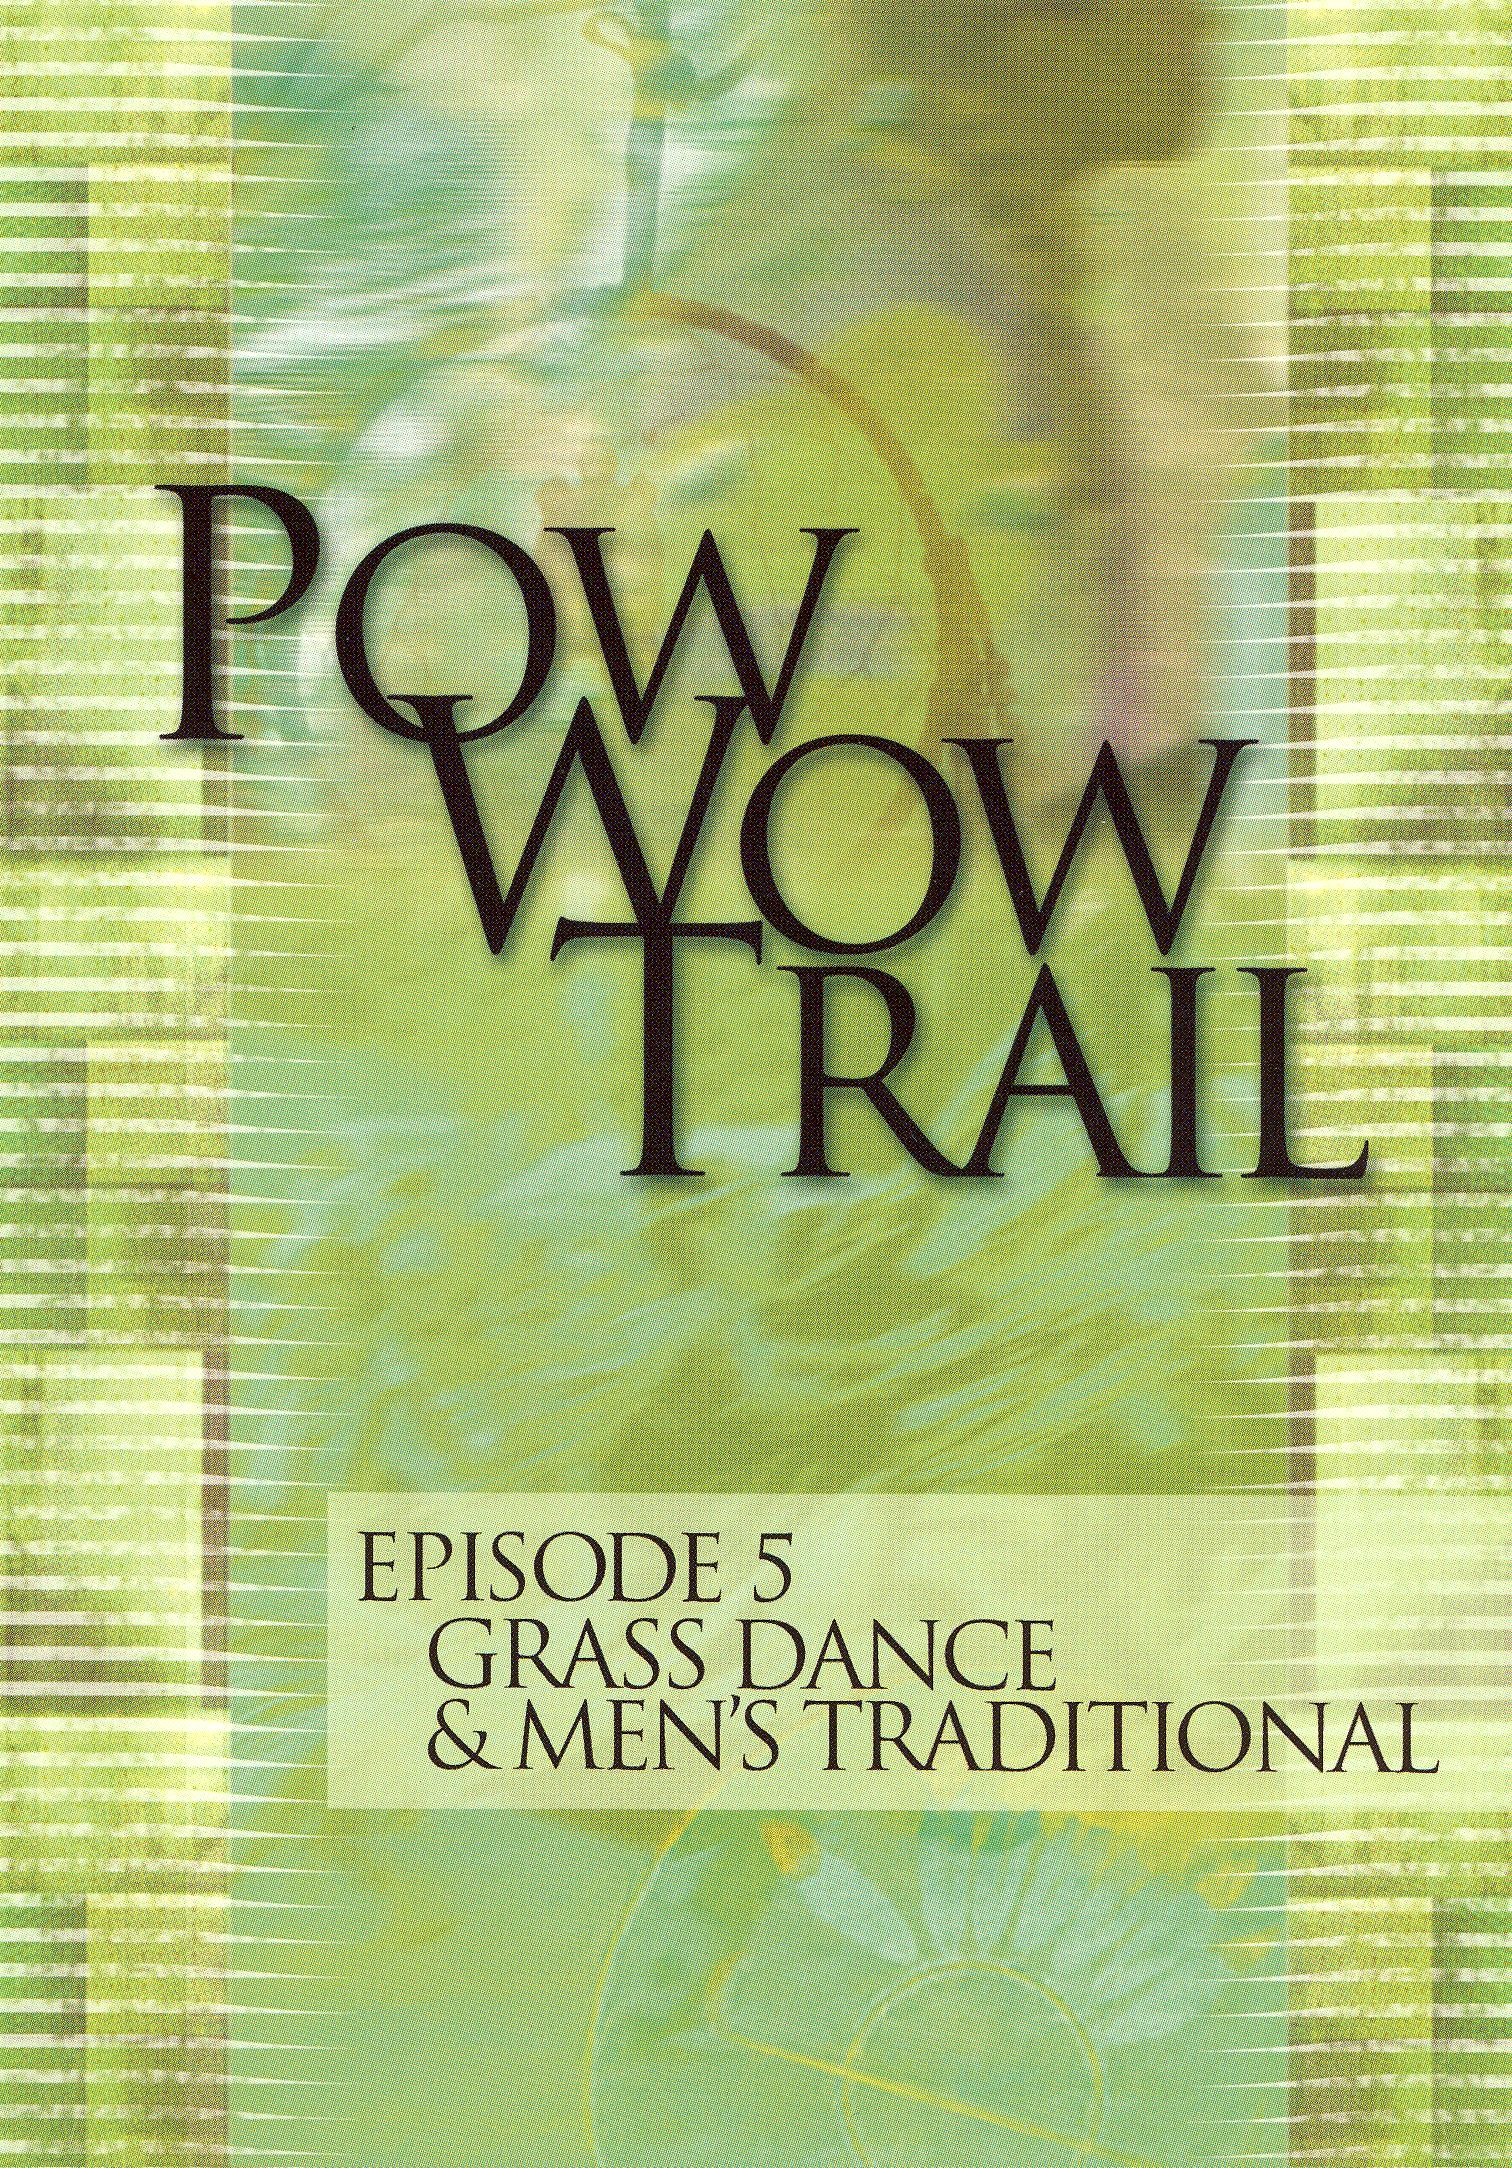 Pow Wow Trail, Episode 5: Grass Dance and Men's Traditional